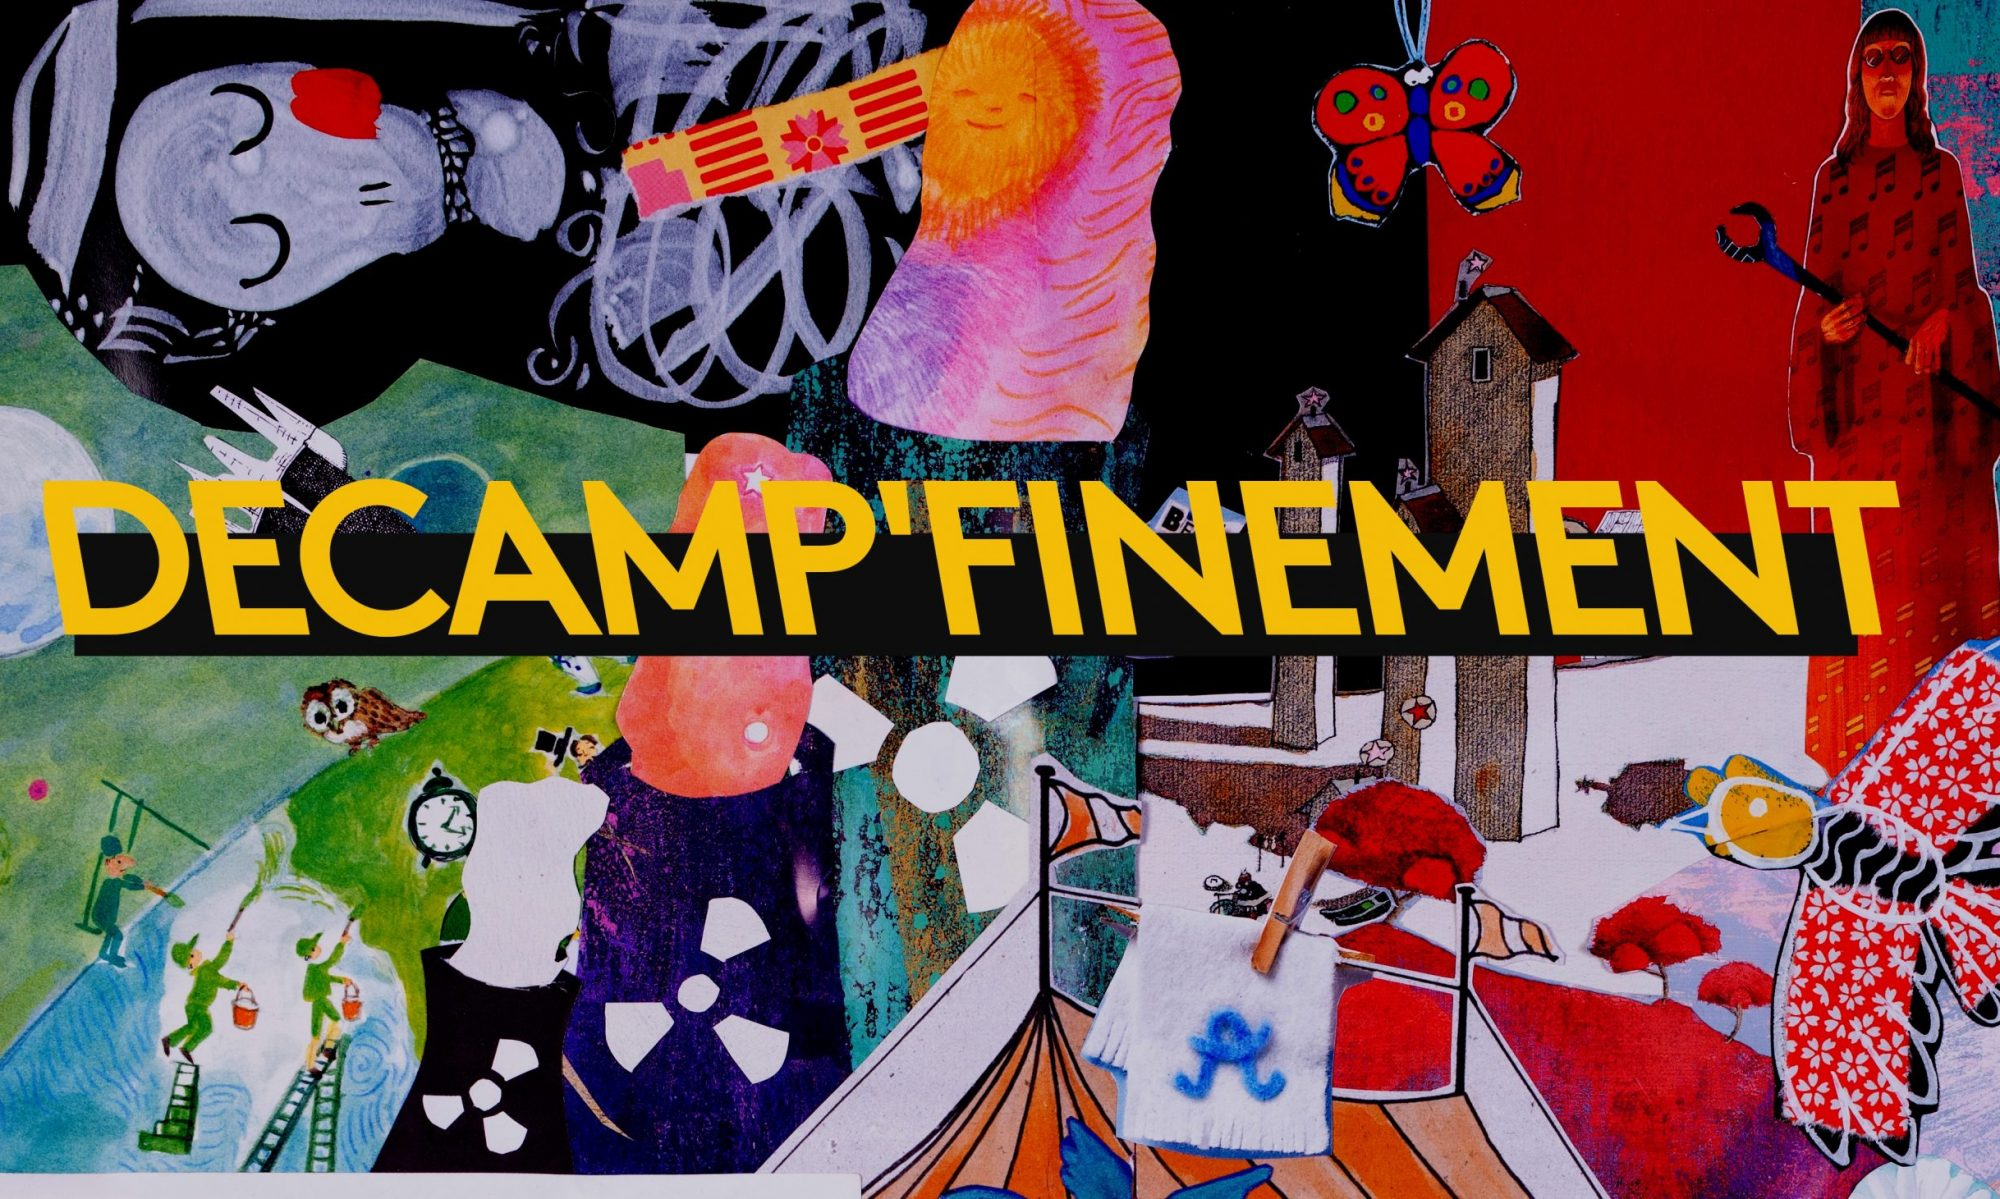 Decamp'Finement